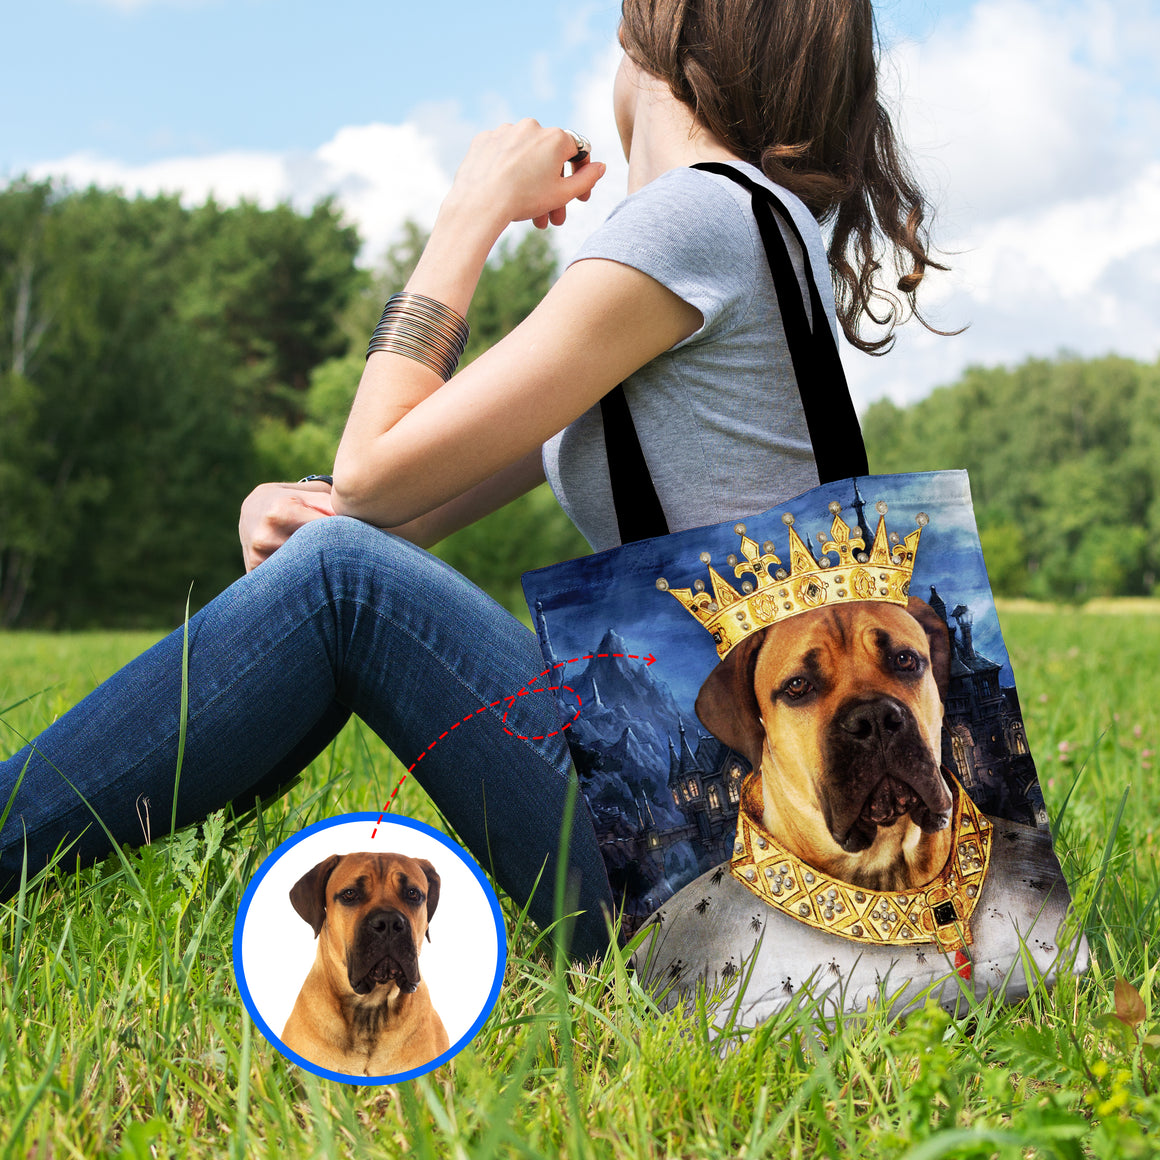 The Doggie King - Personalized Shopping Tote Bag